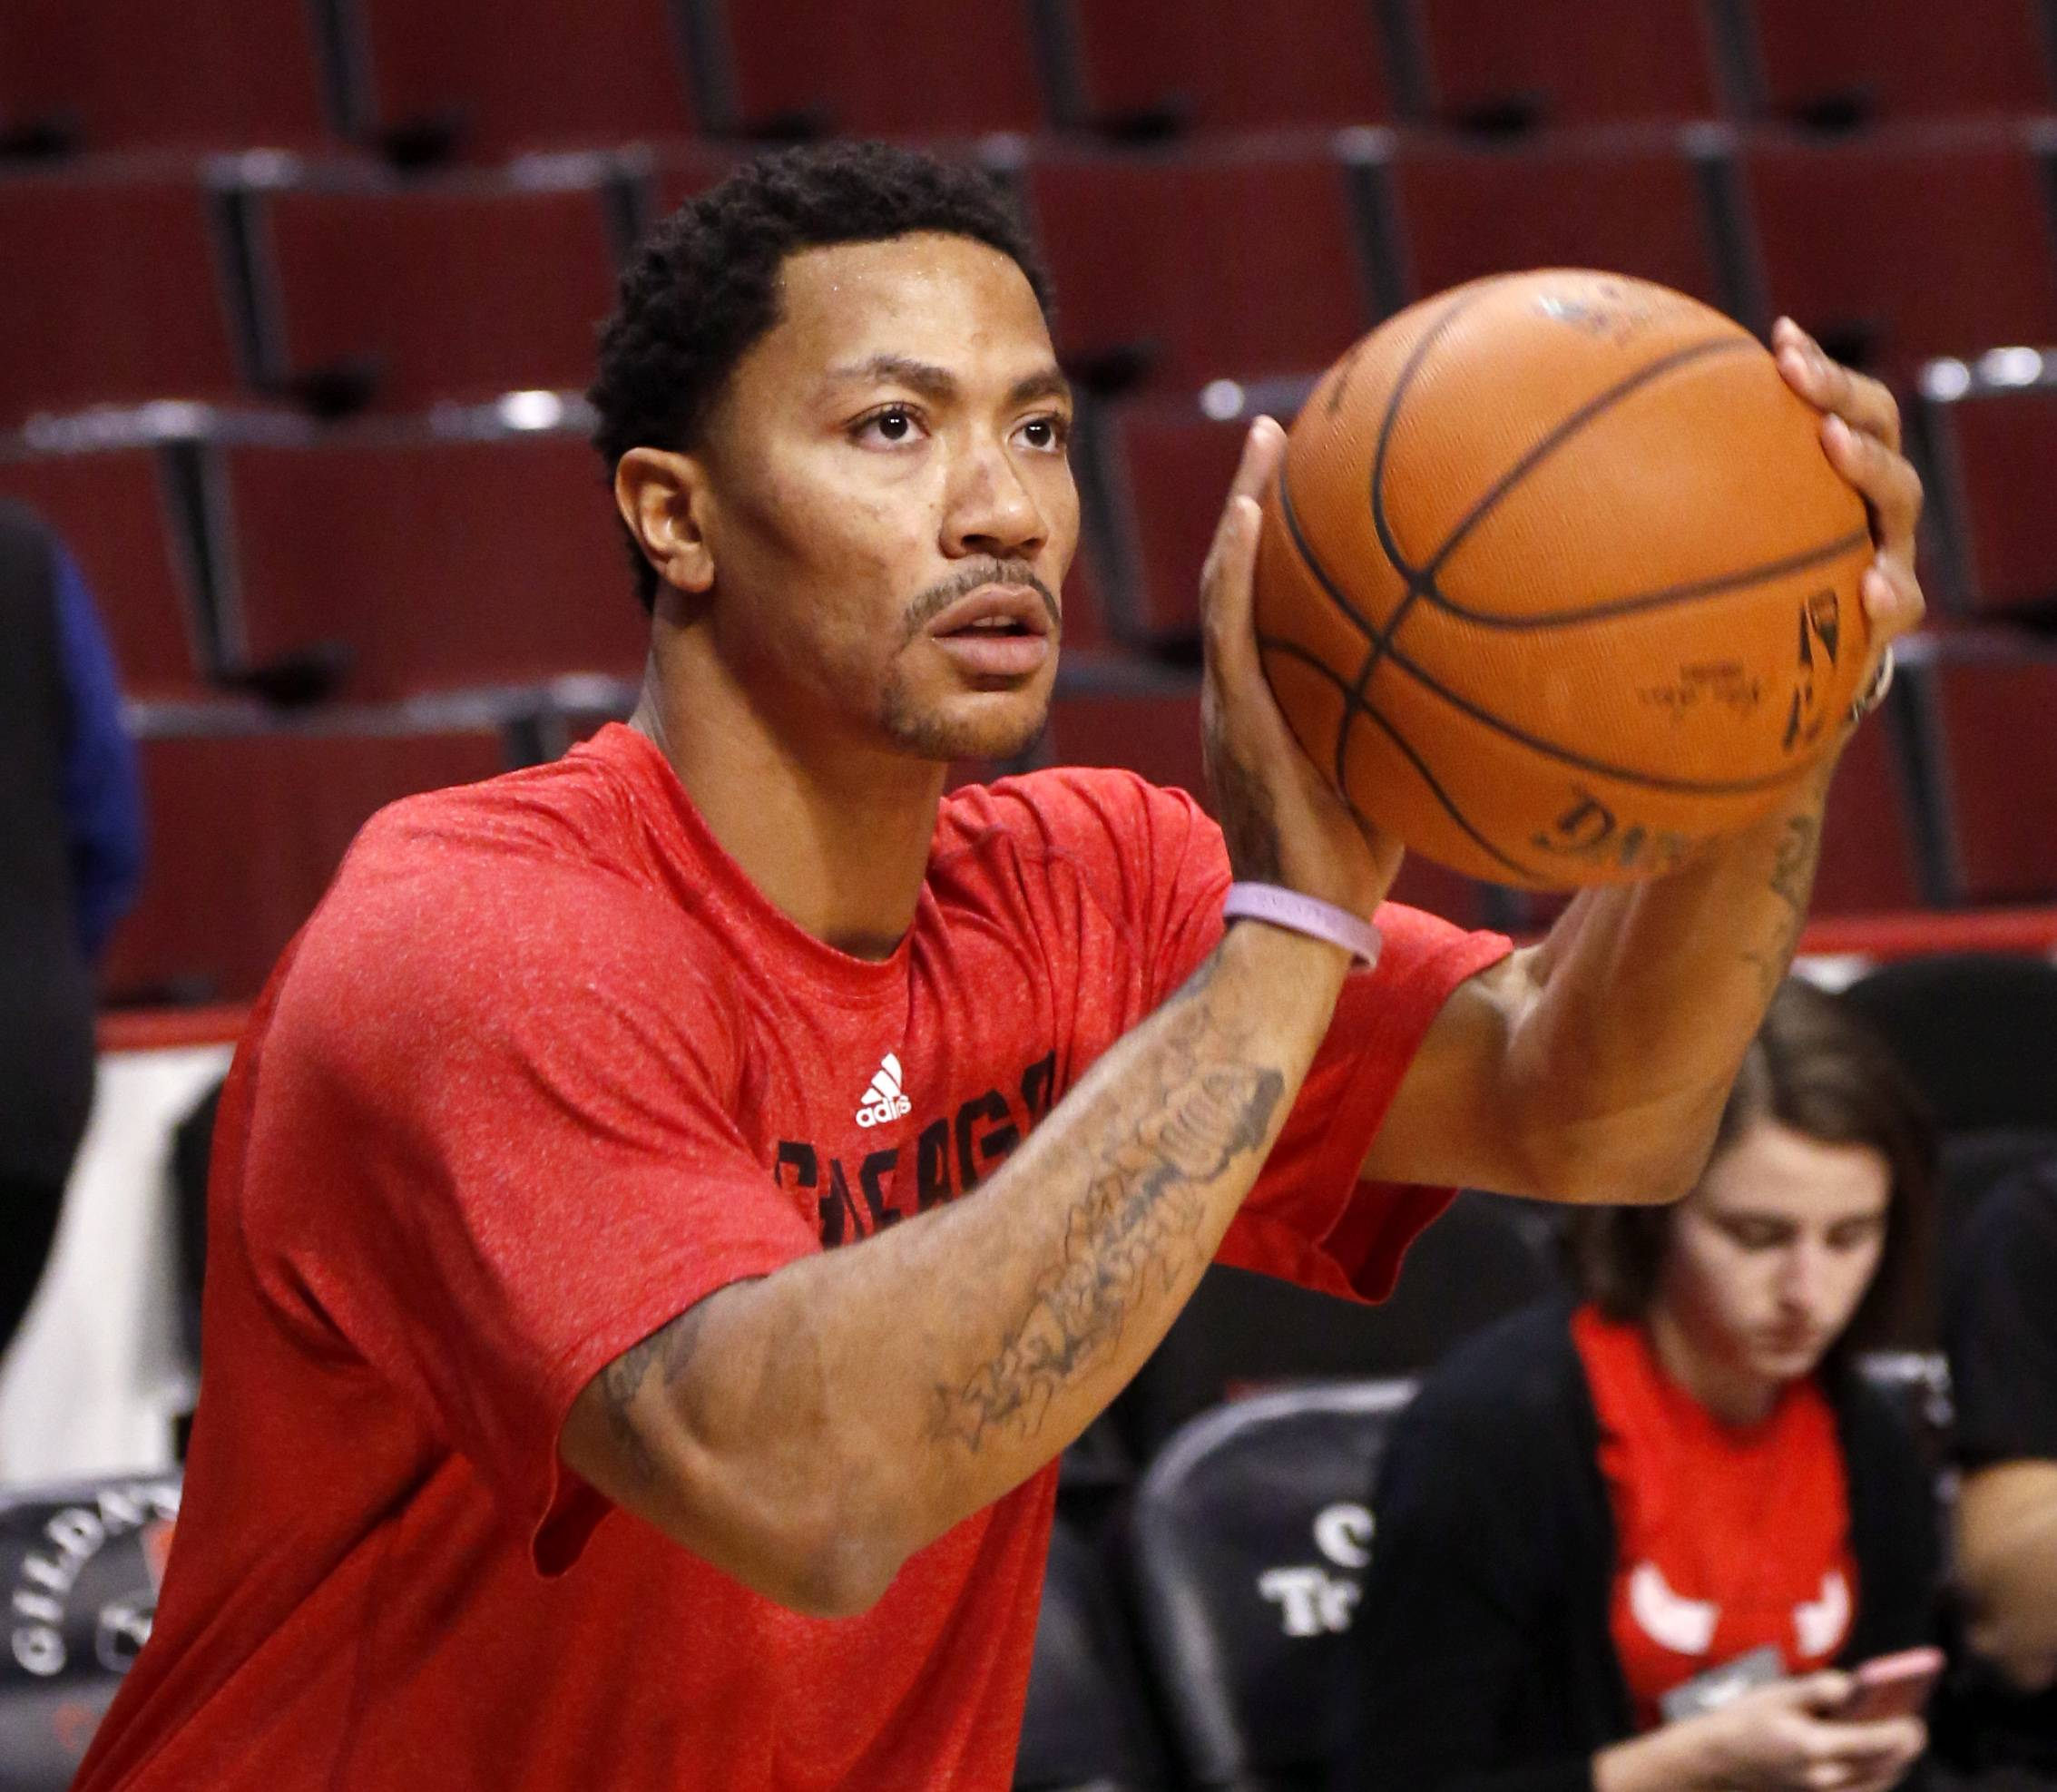 Chicago Bulls guard Derrick Rose works out before an NBA basketball game between the Bulls and the Atlanta Hawks on Tuesday, Feb. 11, 2014, in Chicago.